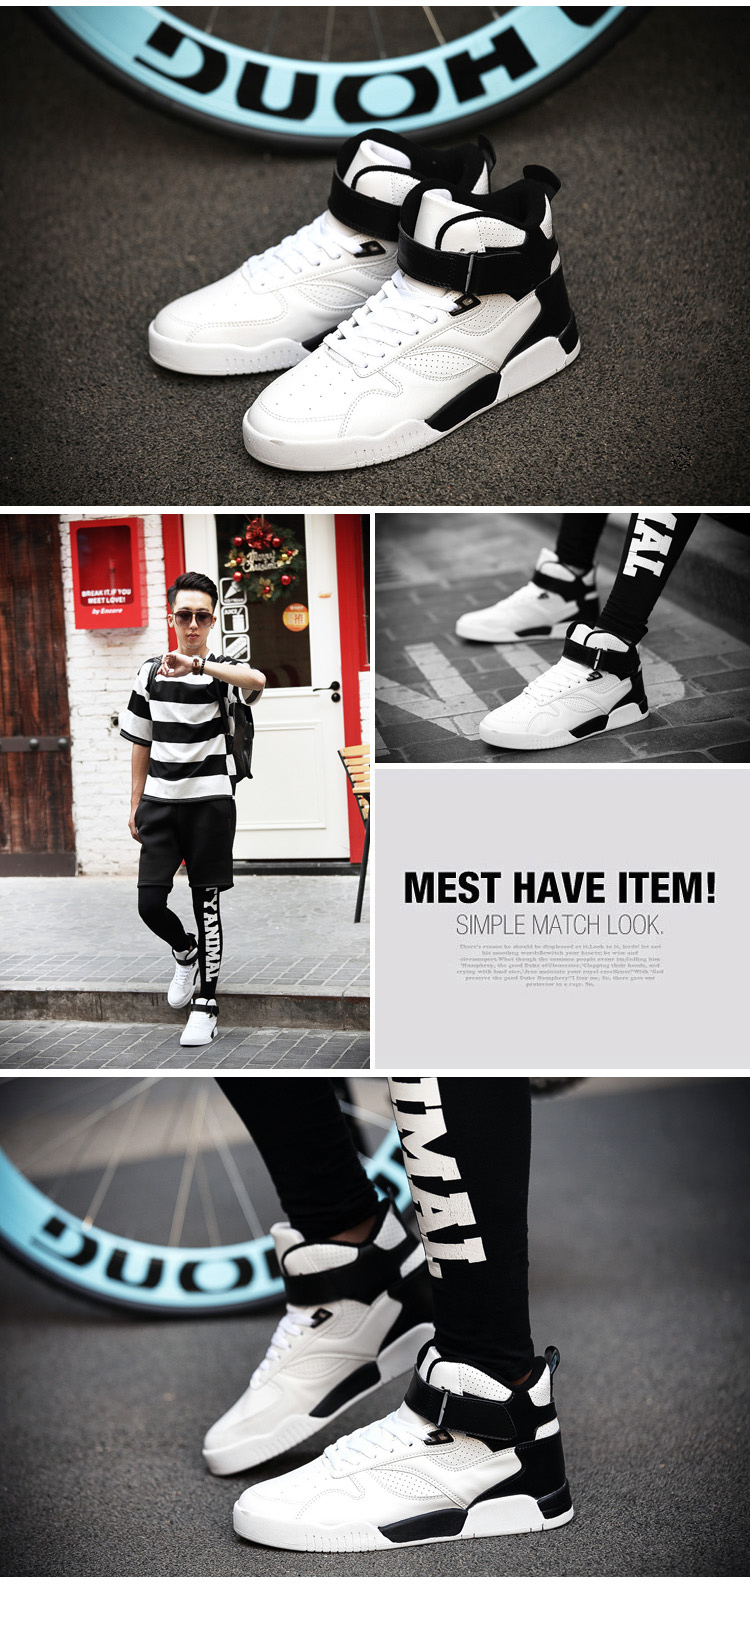 New Classic Men Shoes Outdoors Casual Men Shoes High Top Fashion Boots for Men Breathable Comfortable Zapatos Hombre SIZE 39-44